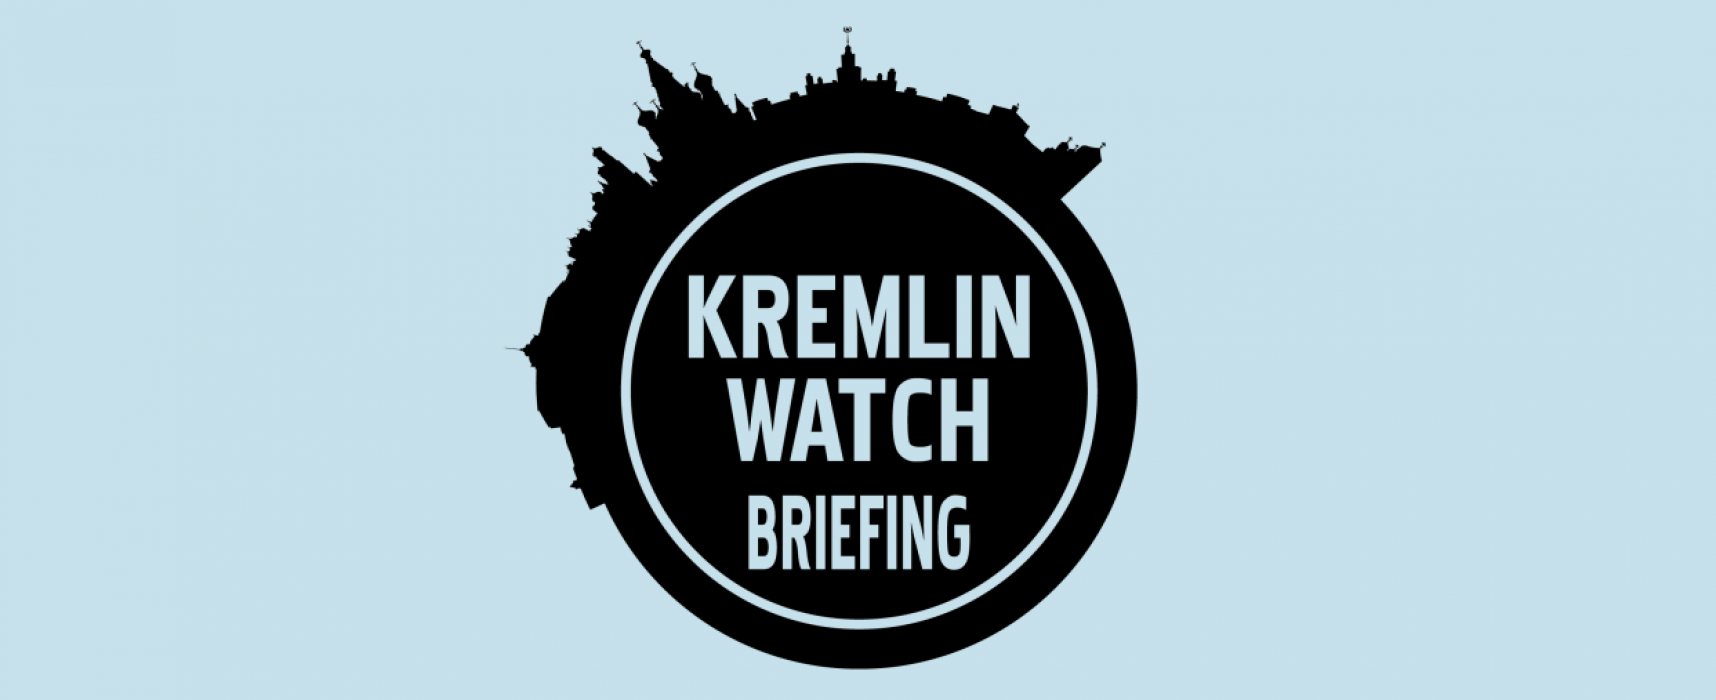 Kremlin Watch Briefing: French President will introduce a law against the spread of 'fake news'